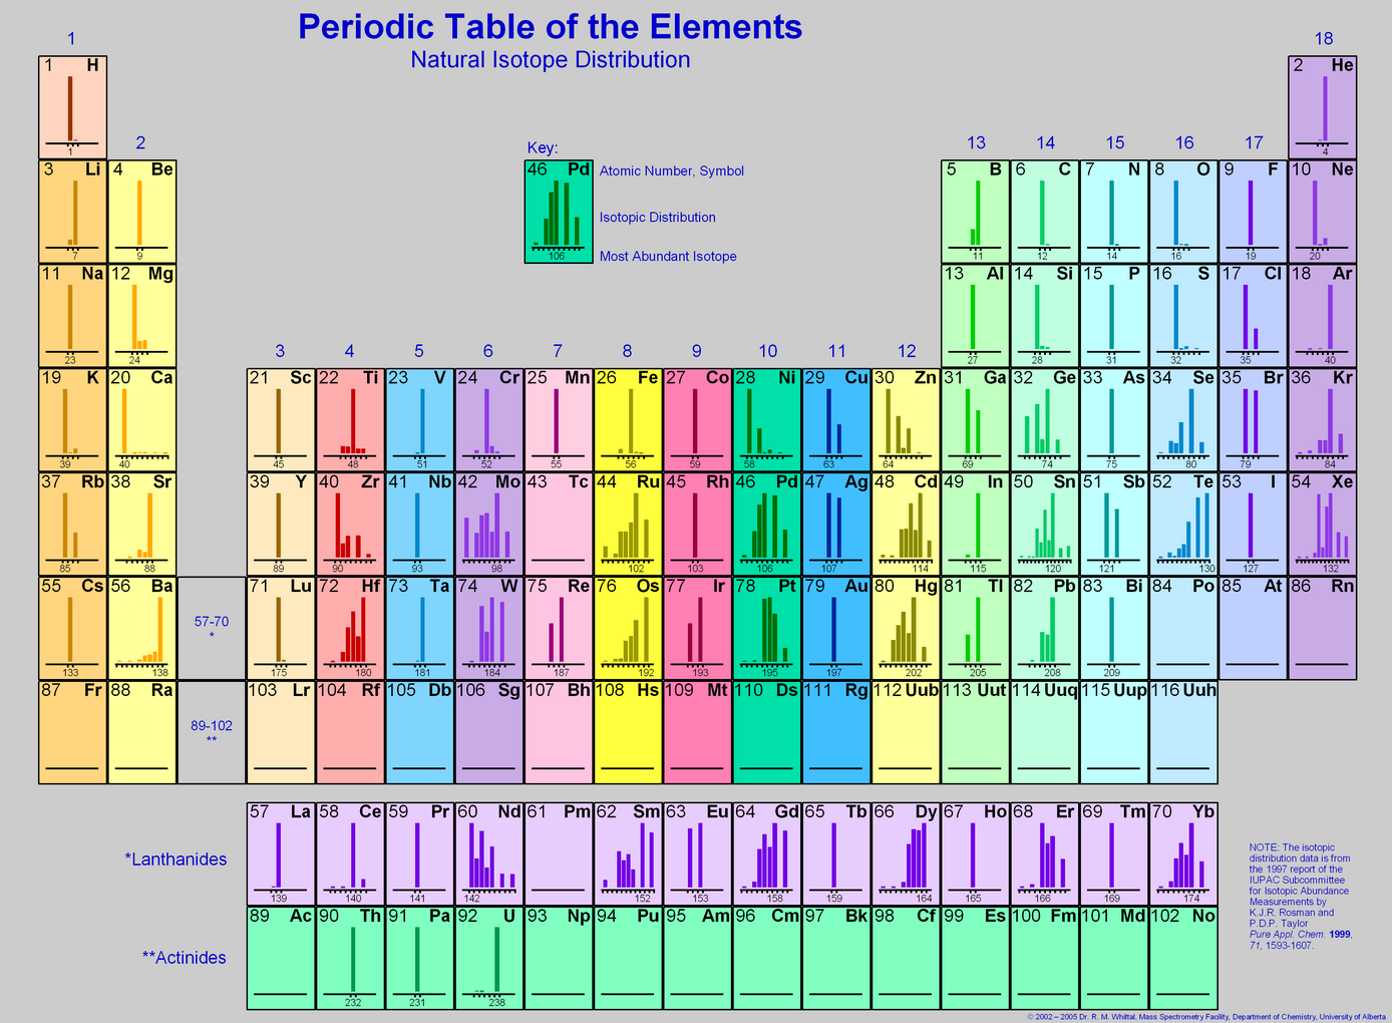 Use a periodic table of isotopes such as those in chegg periodic table of the elements natural isotope distribution 18 2 he key 15 16 17 3 gamestrikefo Images